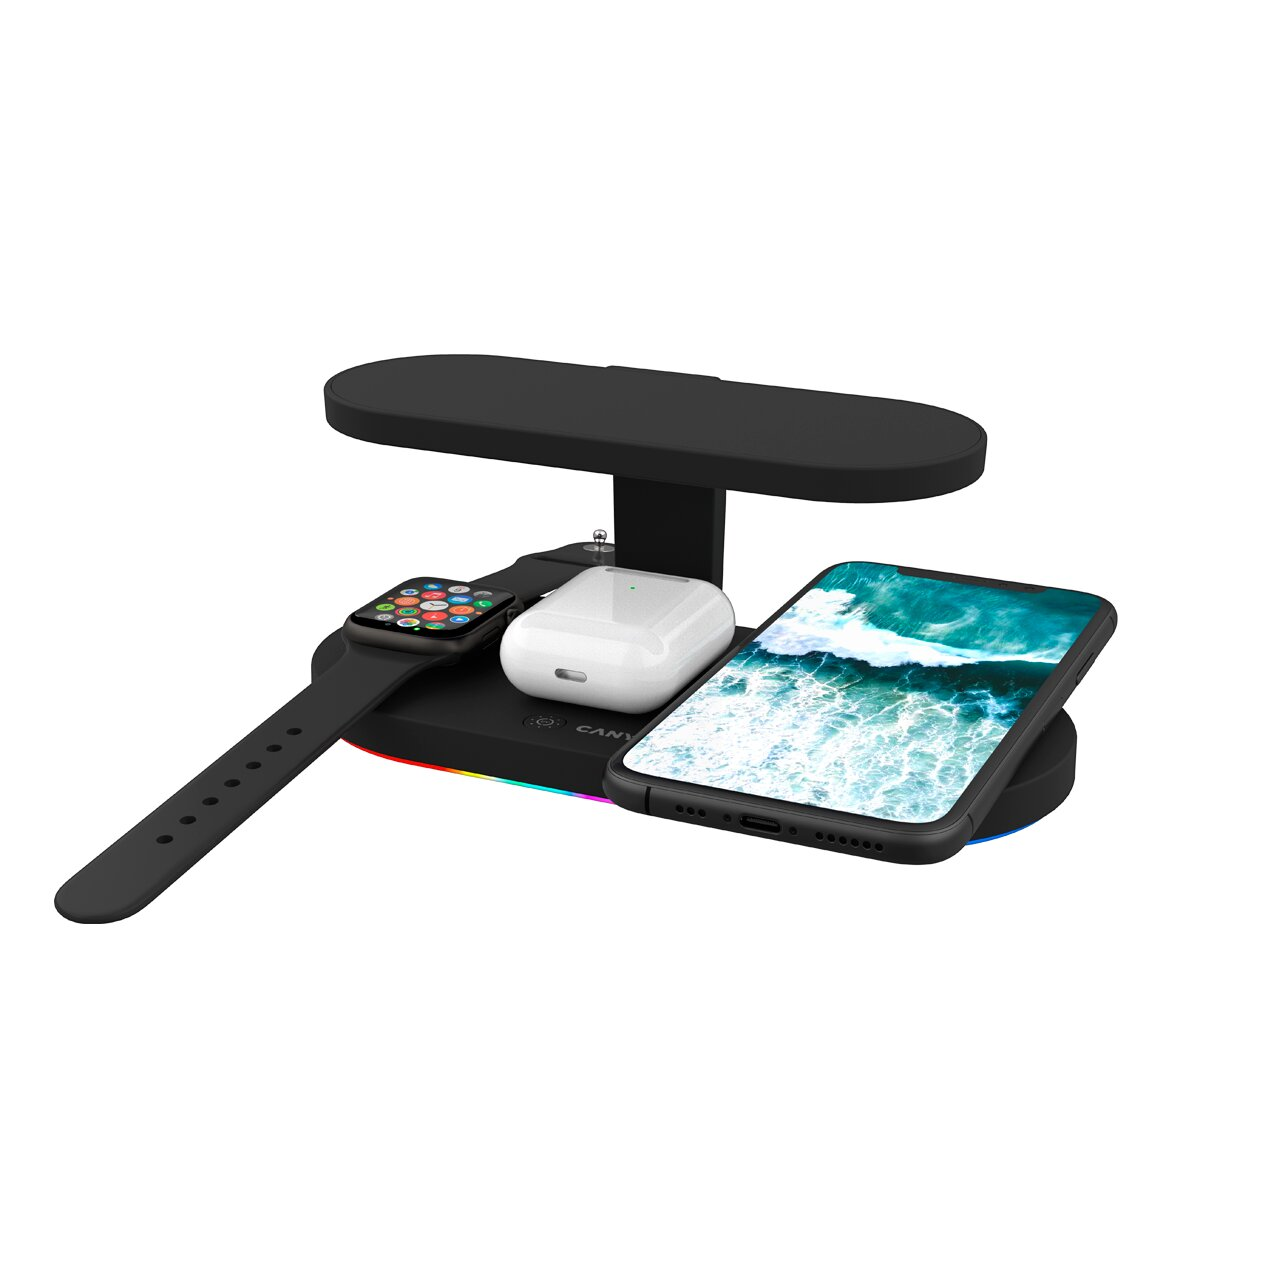 CANYON WS-501 5in1 Wireless charger, with UV sterilizer, with touch button for Running water light, Type c to USB-A cable length 1.2m,black